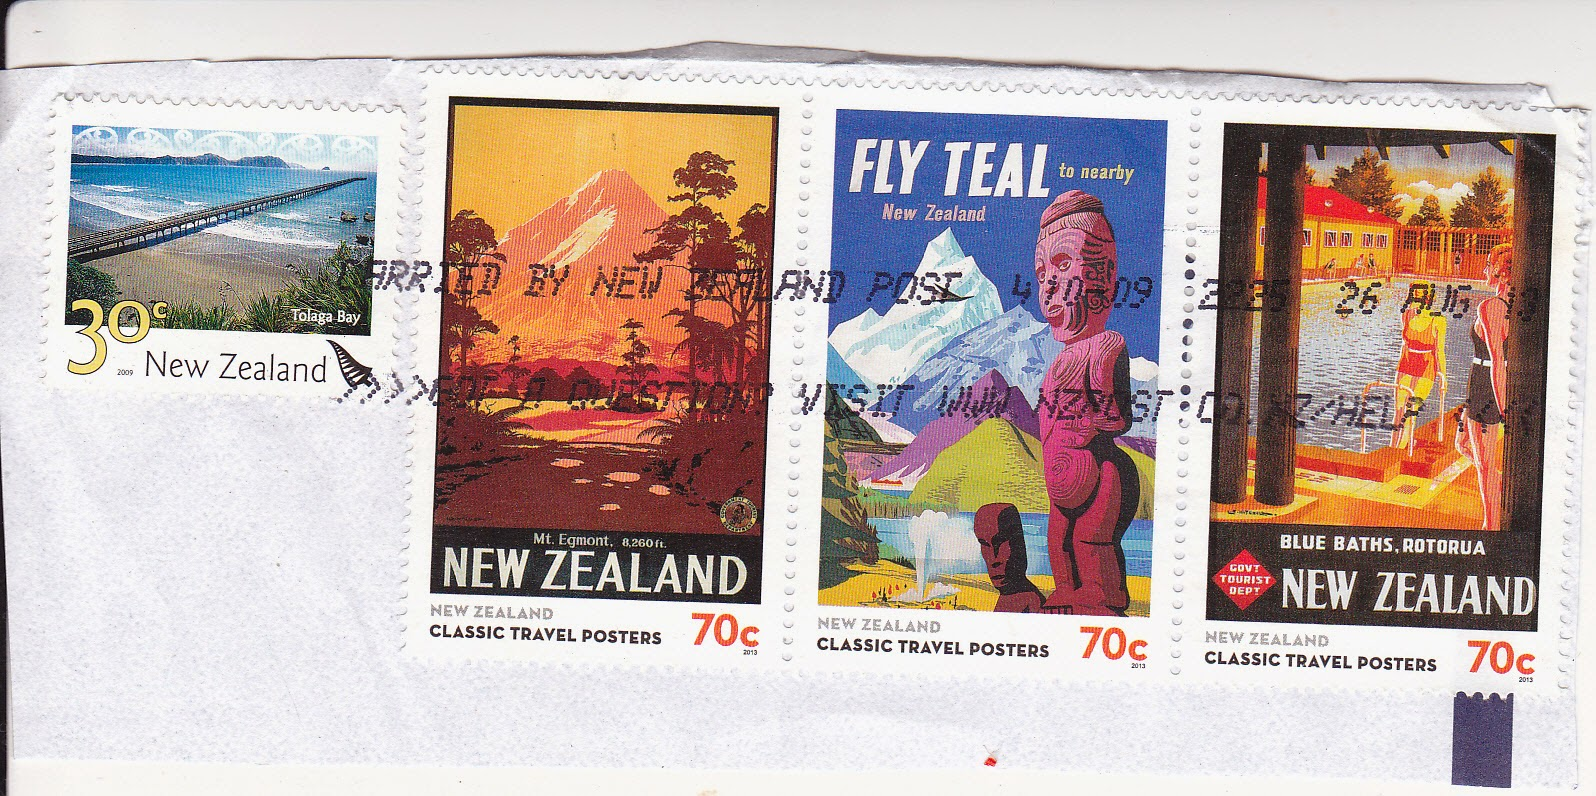 Classic Travel Posters - stamps from New Zealand